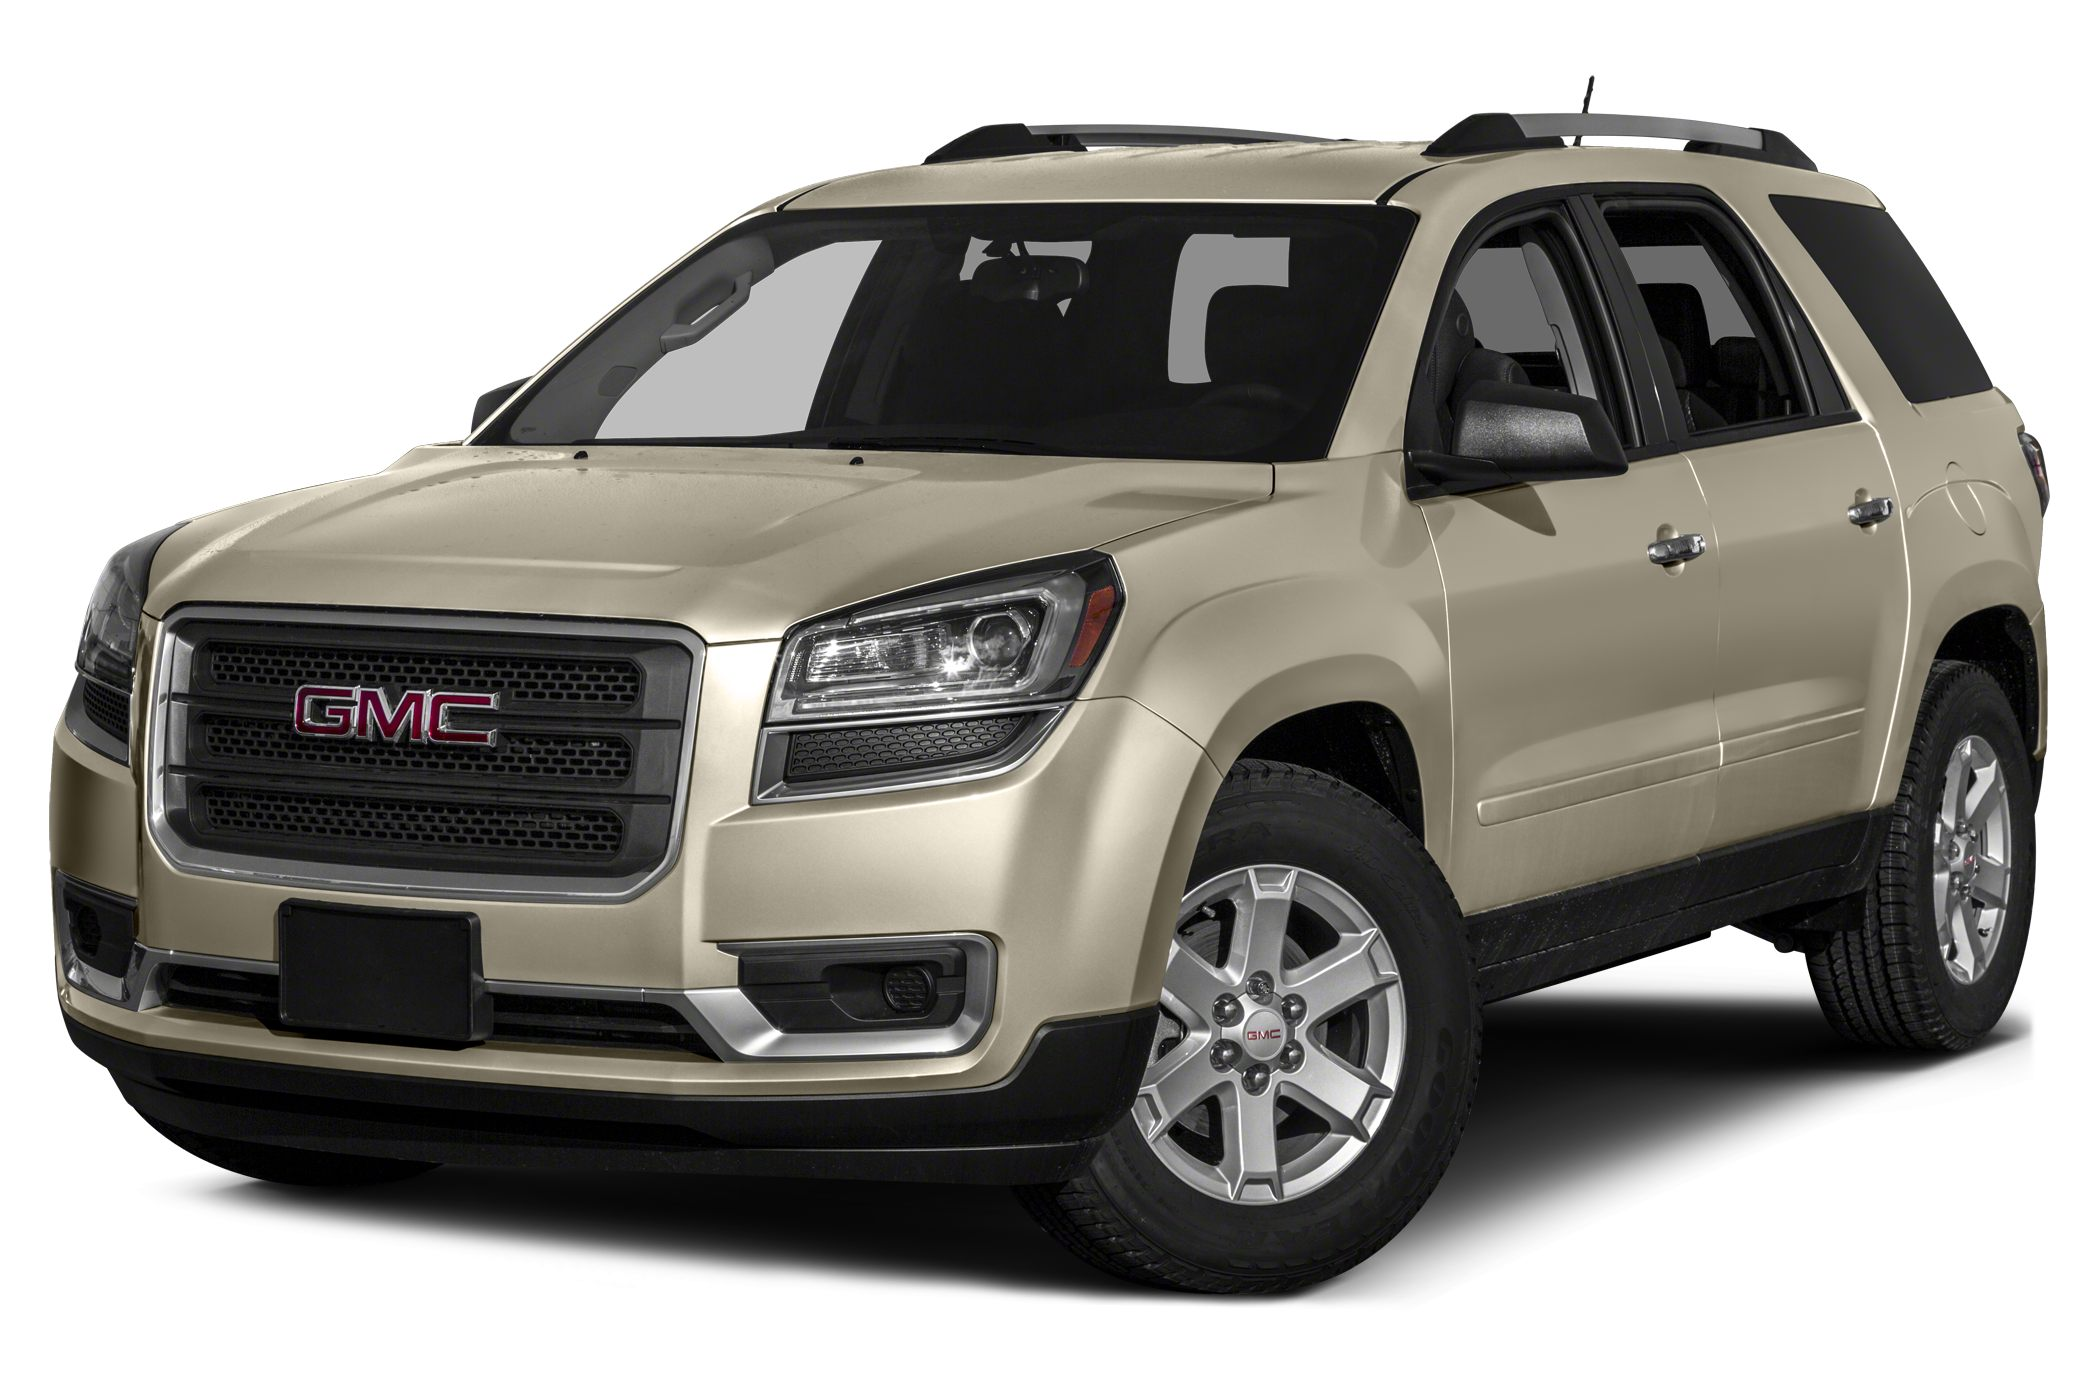 evan mccausland chicago acadia gmc and denali sale for front view facelifted news